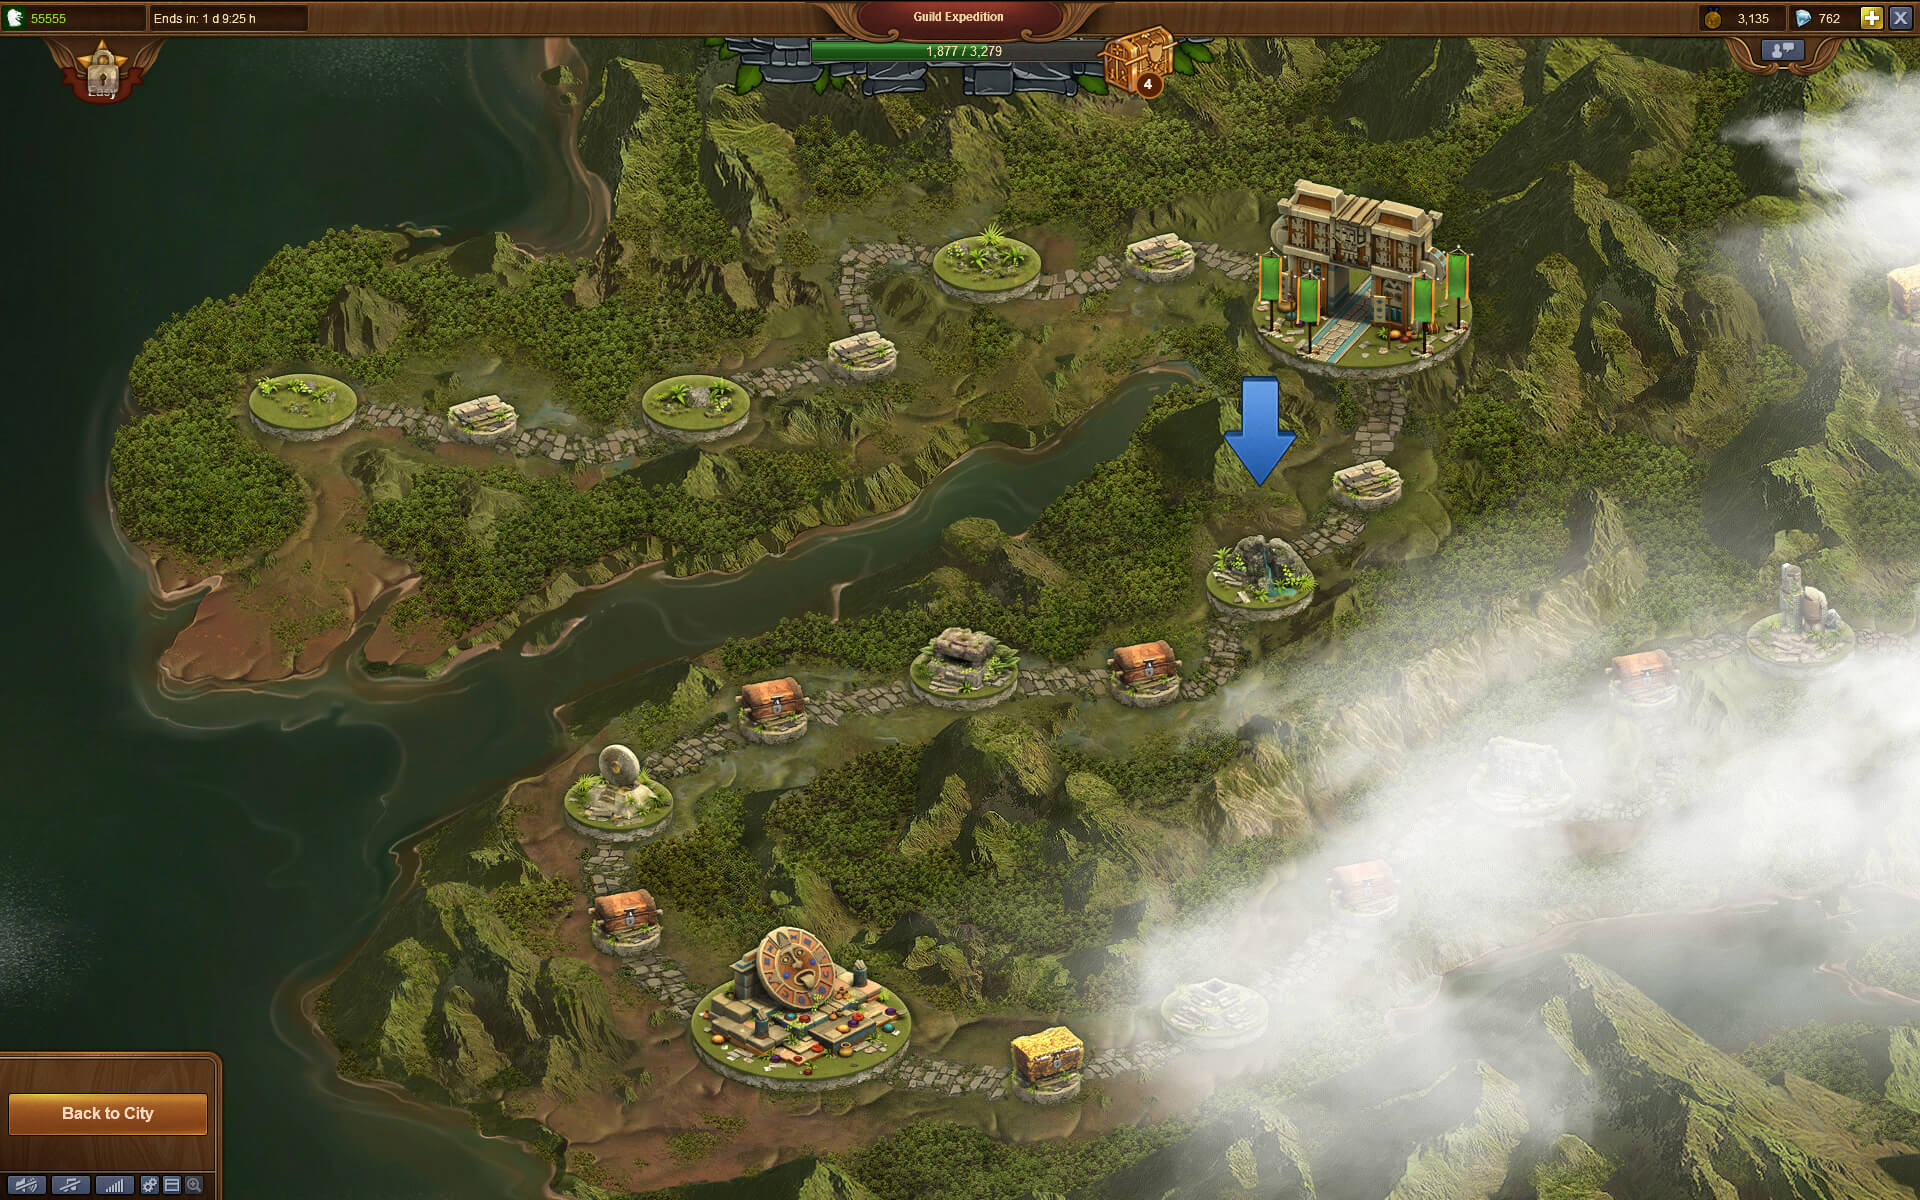 guild expeditions coming to forge of empires. Black Bedroom Furniture Sets. Home Design Ideas